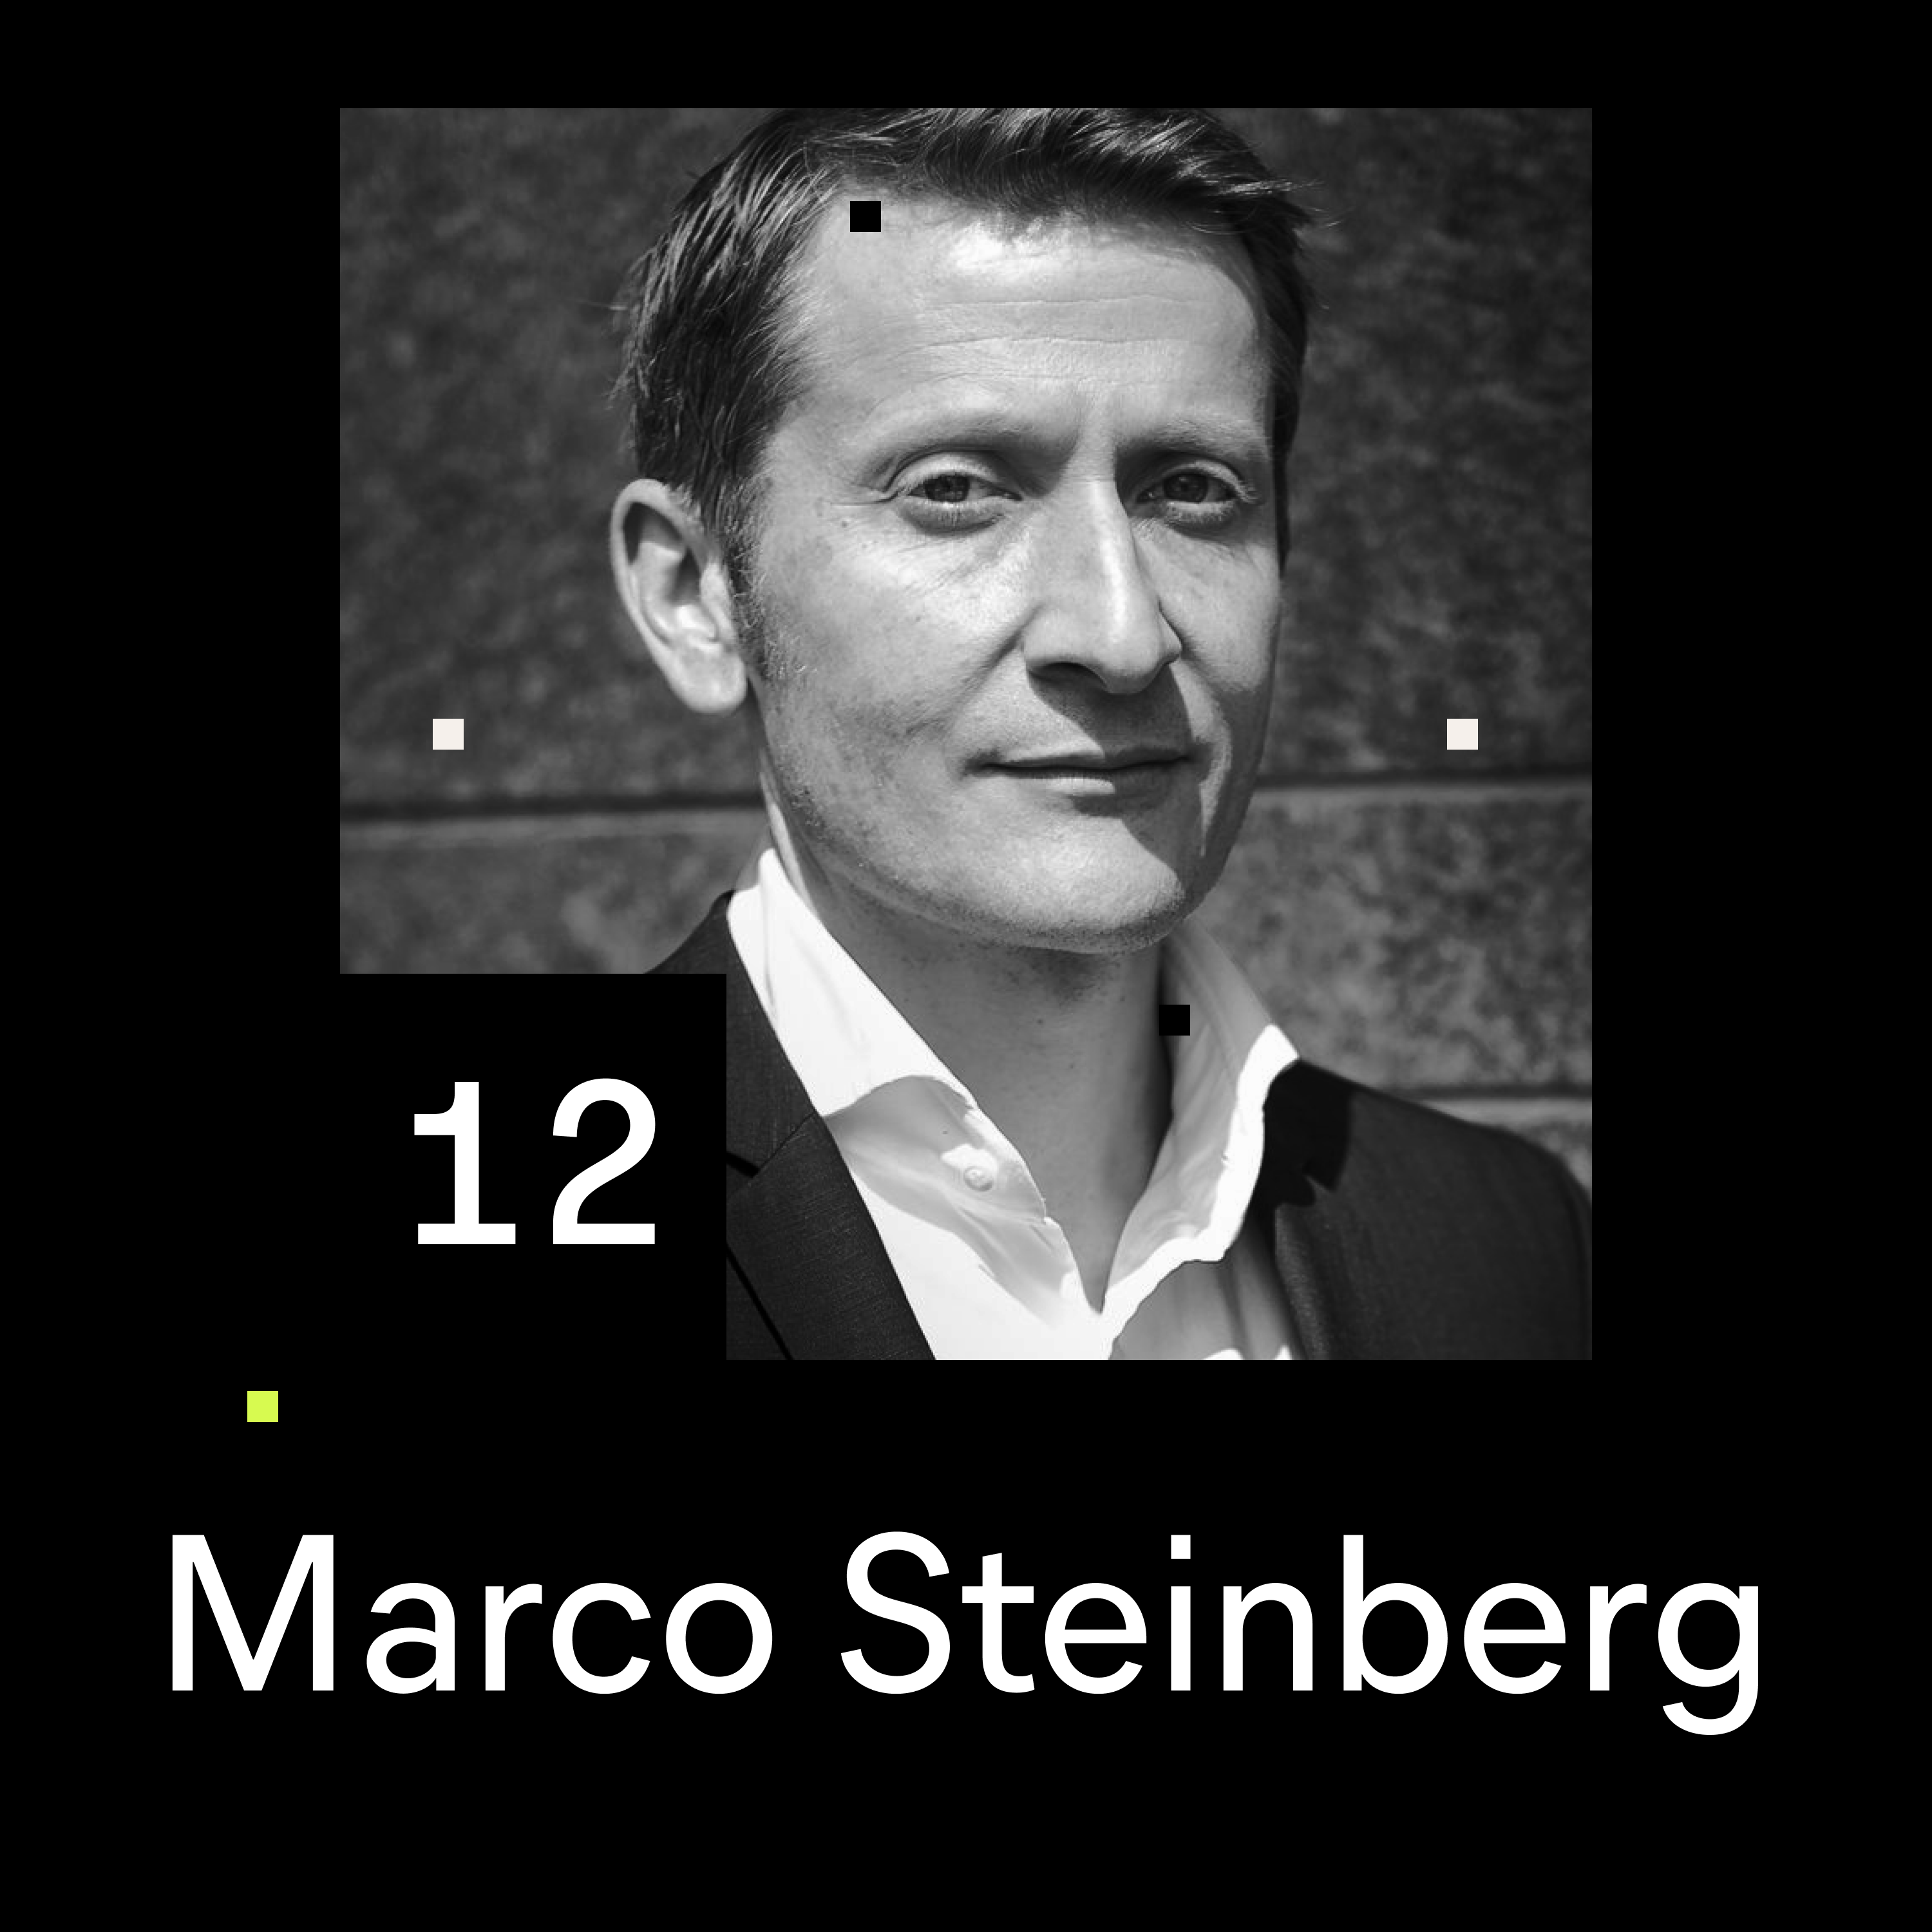 Black and white portrait of Marco Steinberg for the 12th episode of the Shaping Chaos podcast